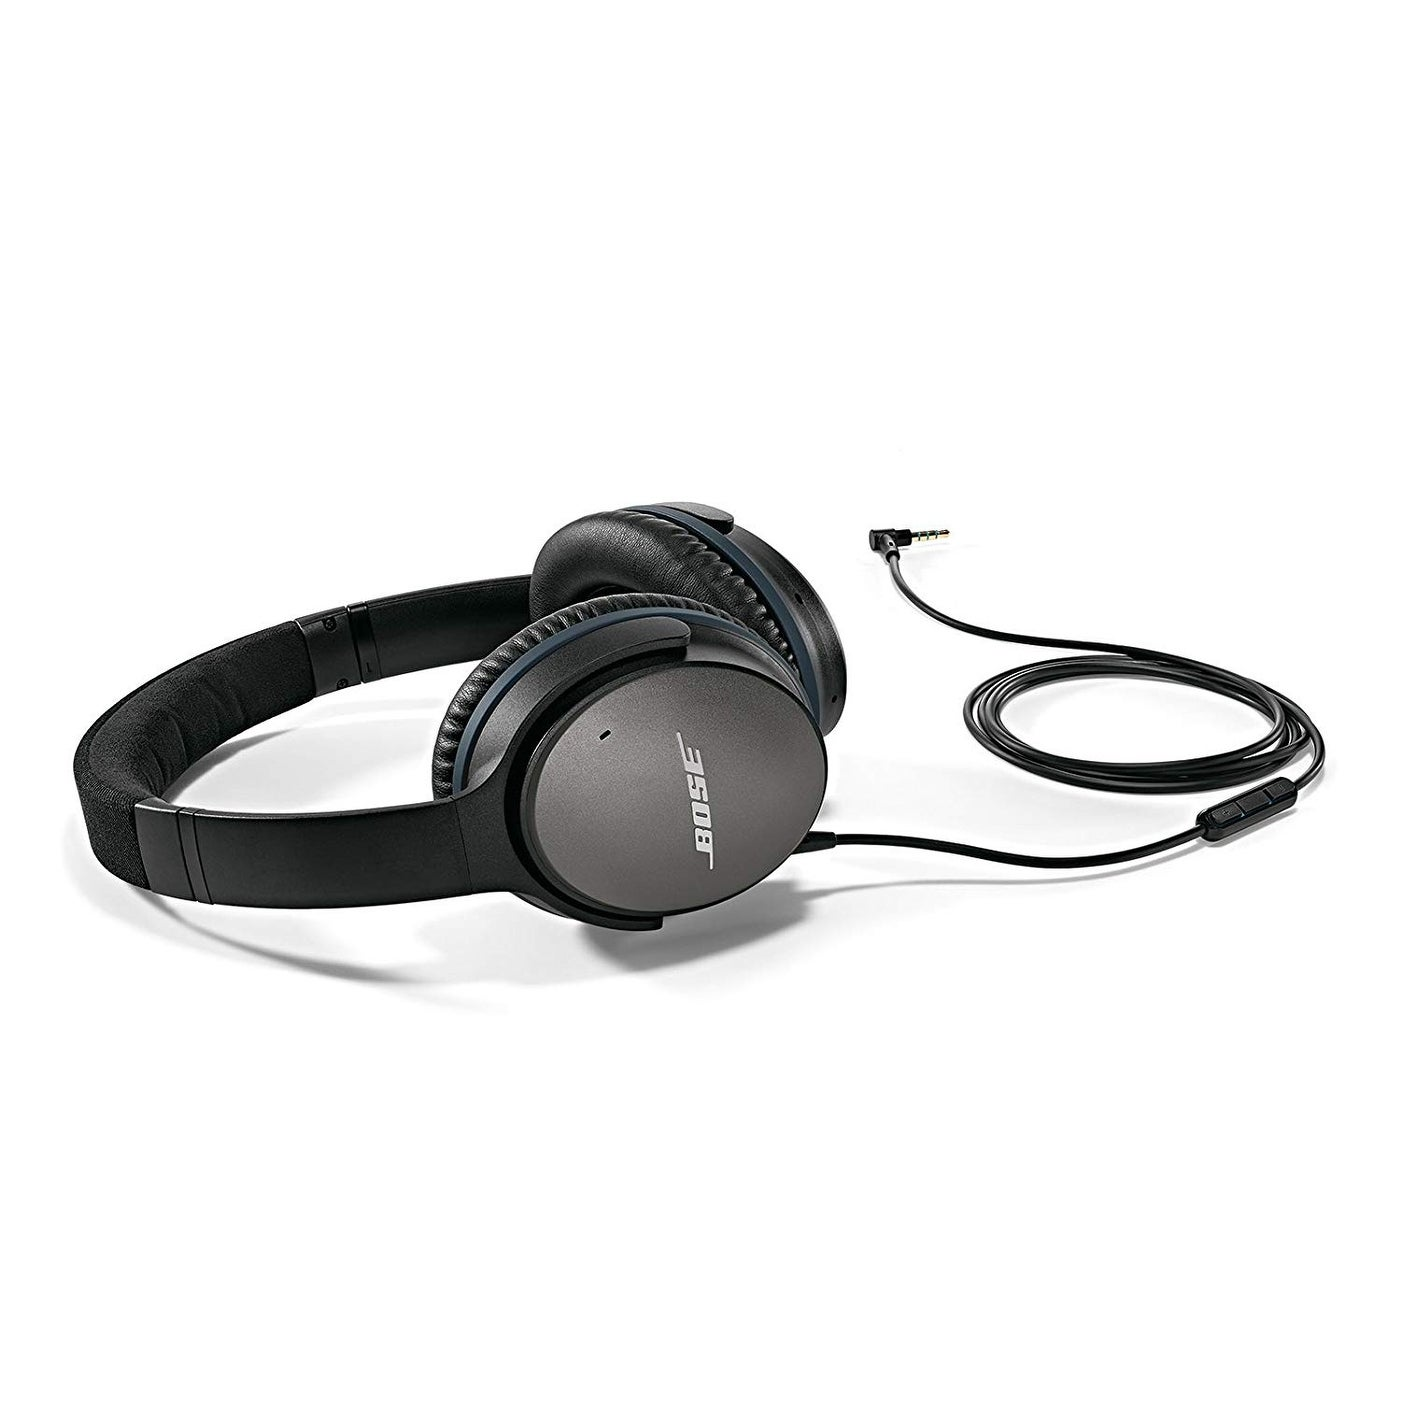 0f310f1e349 Bose QuietComfort 25 Acoustic Noise Cancelling Headphones for Apple devices  - Black (wired, 3.5mm)